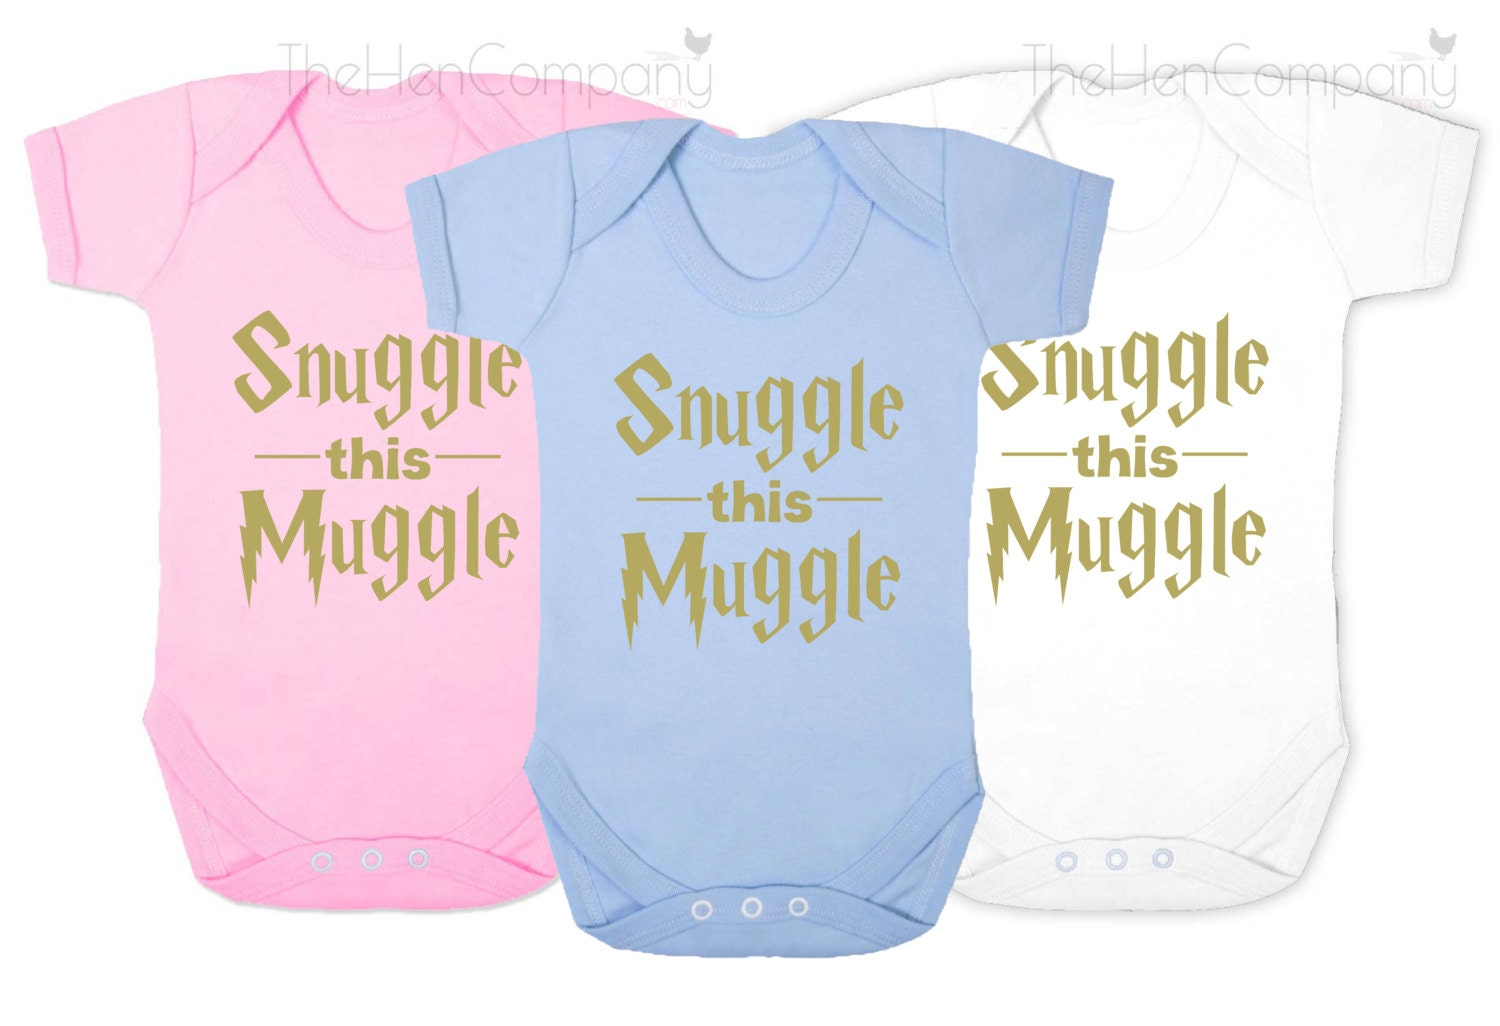 Harry Potter Quote Baby Clothes Snuggle This Muggle Quote Harry Potter Babygrow Harry Potter Bodysuit Funny Babygrow Funny Bodysuit